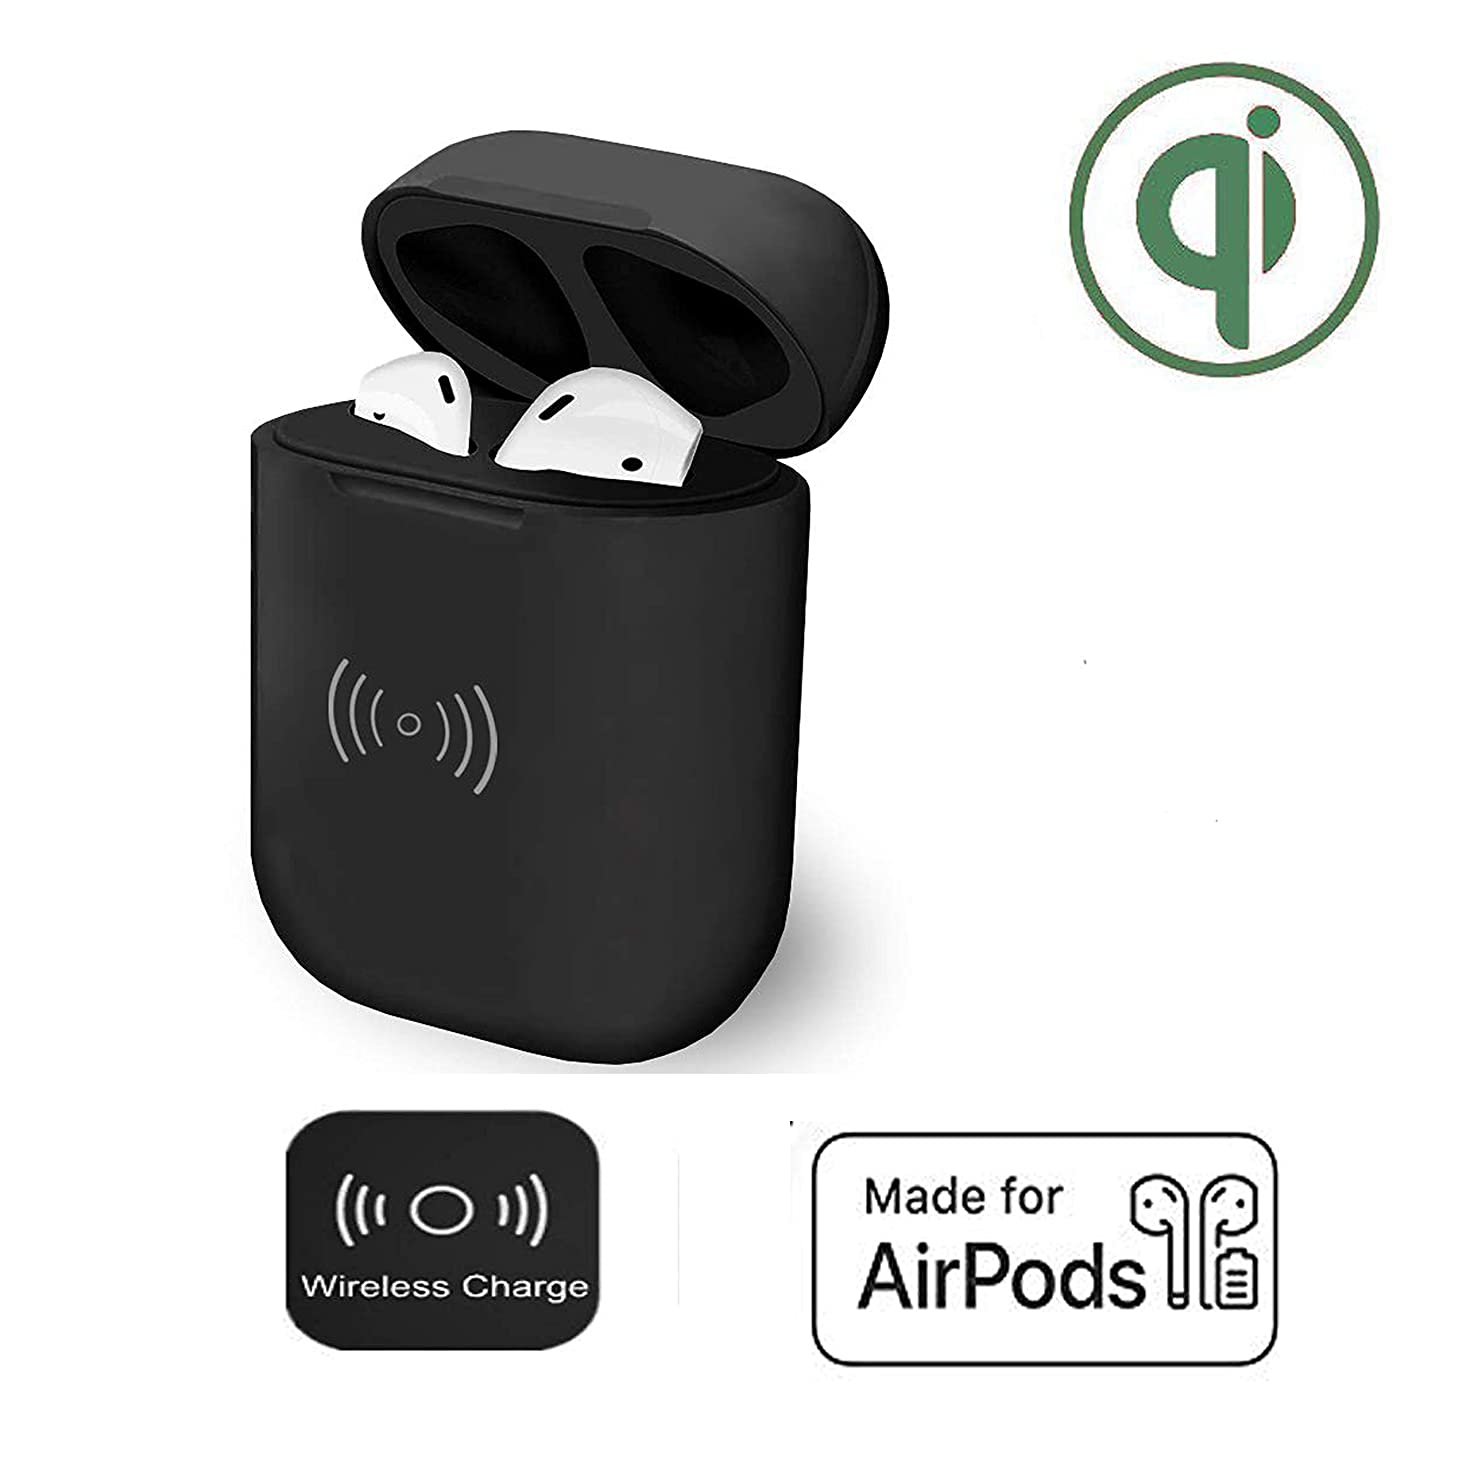 POWVAN Wireless Charging Case Replacement of Ai pods Charger Case, Fast Charging Built-in Batteries Supply 24 Hours Power Compatible with AirPodst (Black)